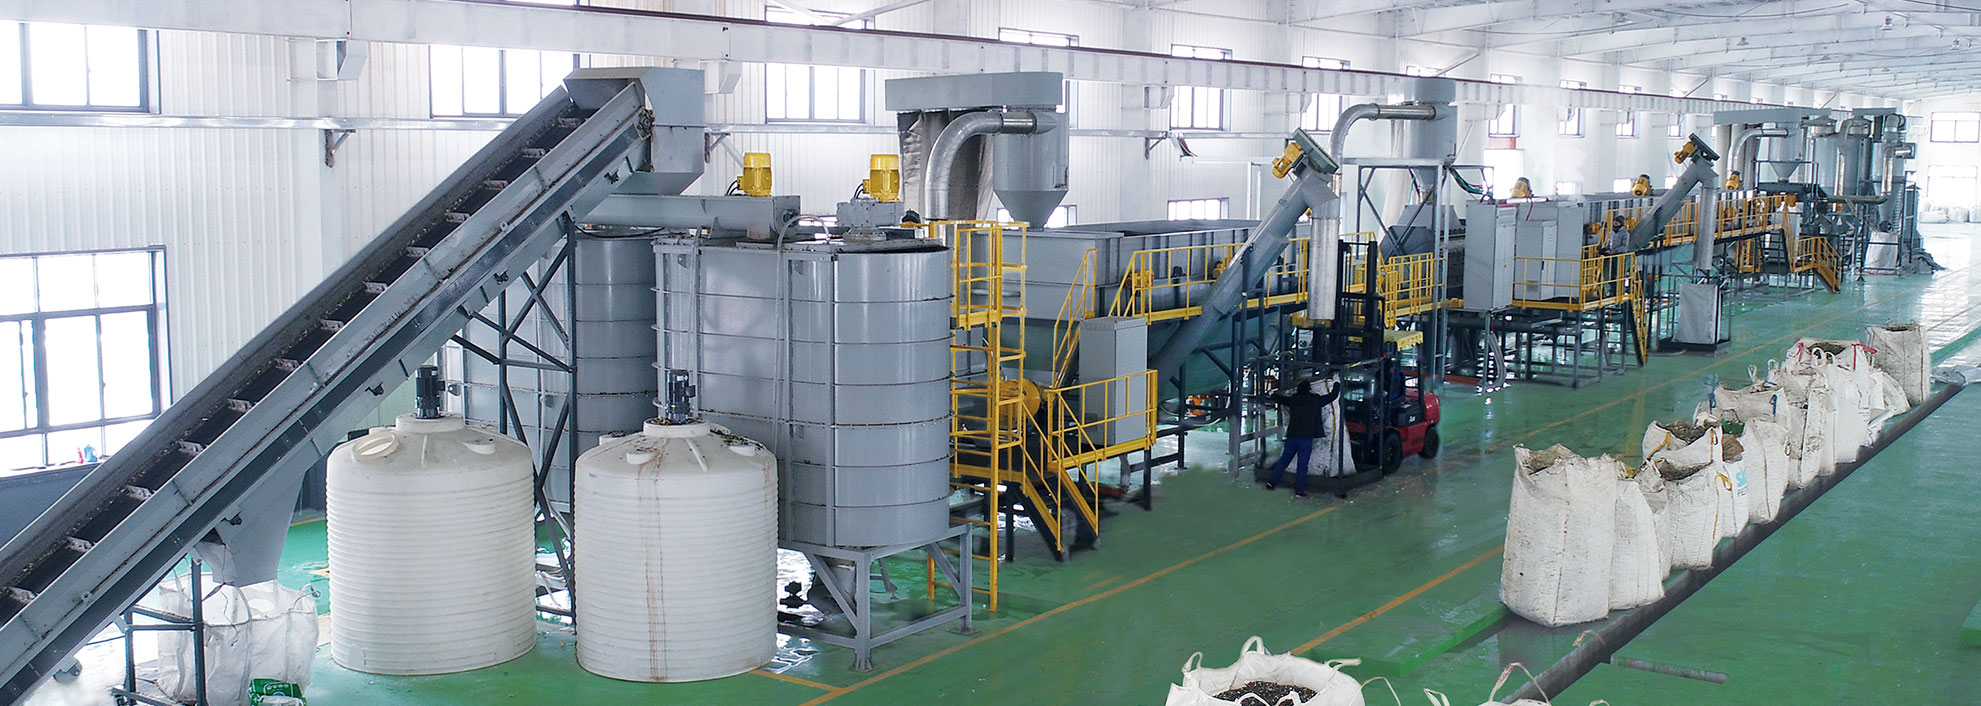 HDPE Bottle/Container Washing System